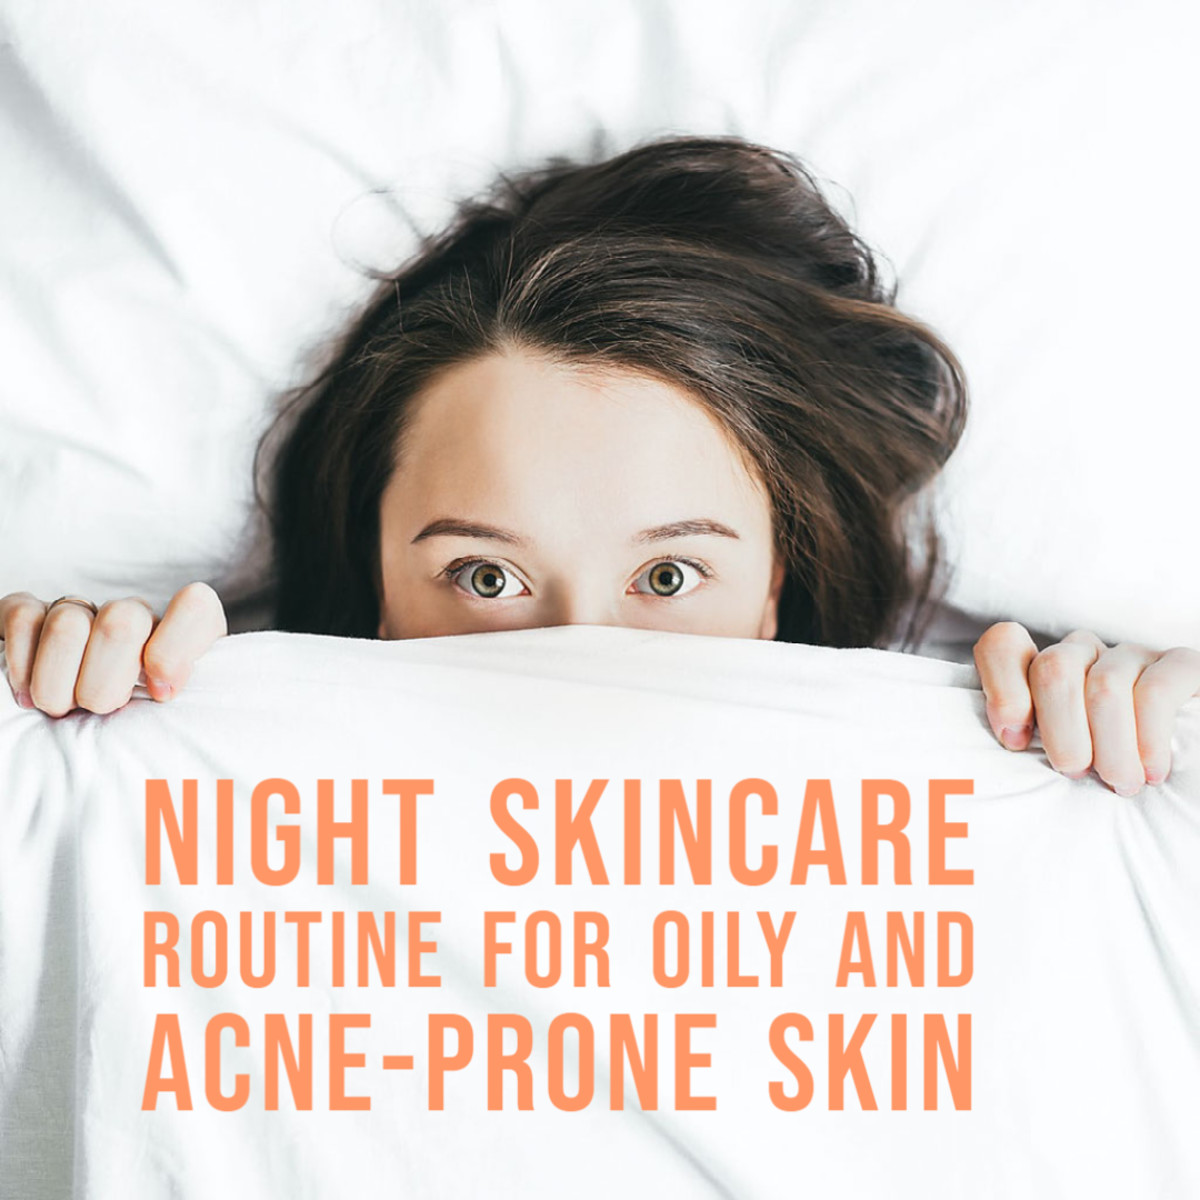 night-skincare-routine-for-acne-prone-and-oily-skin